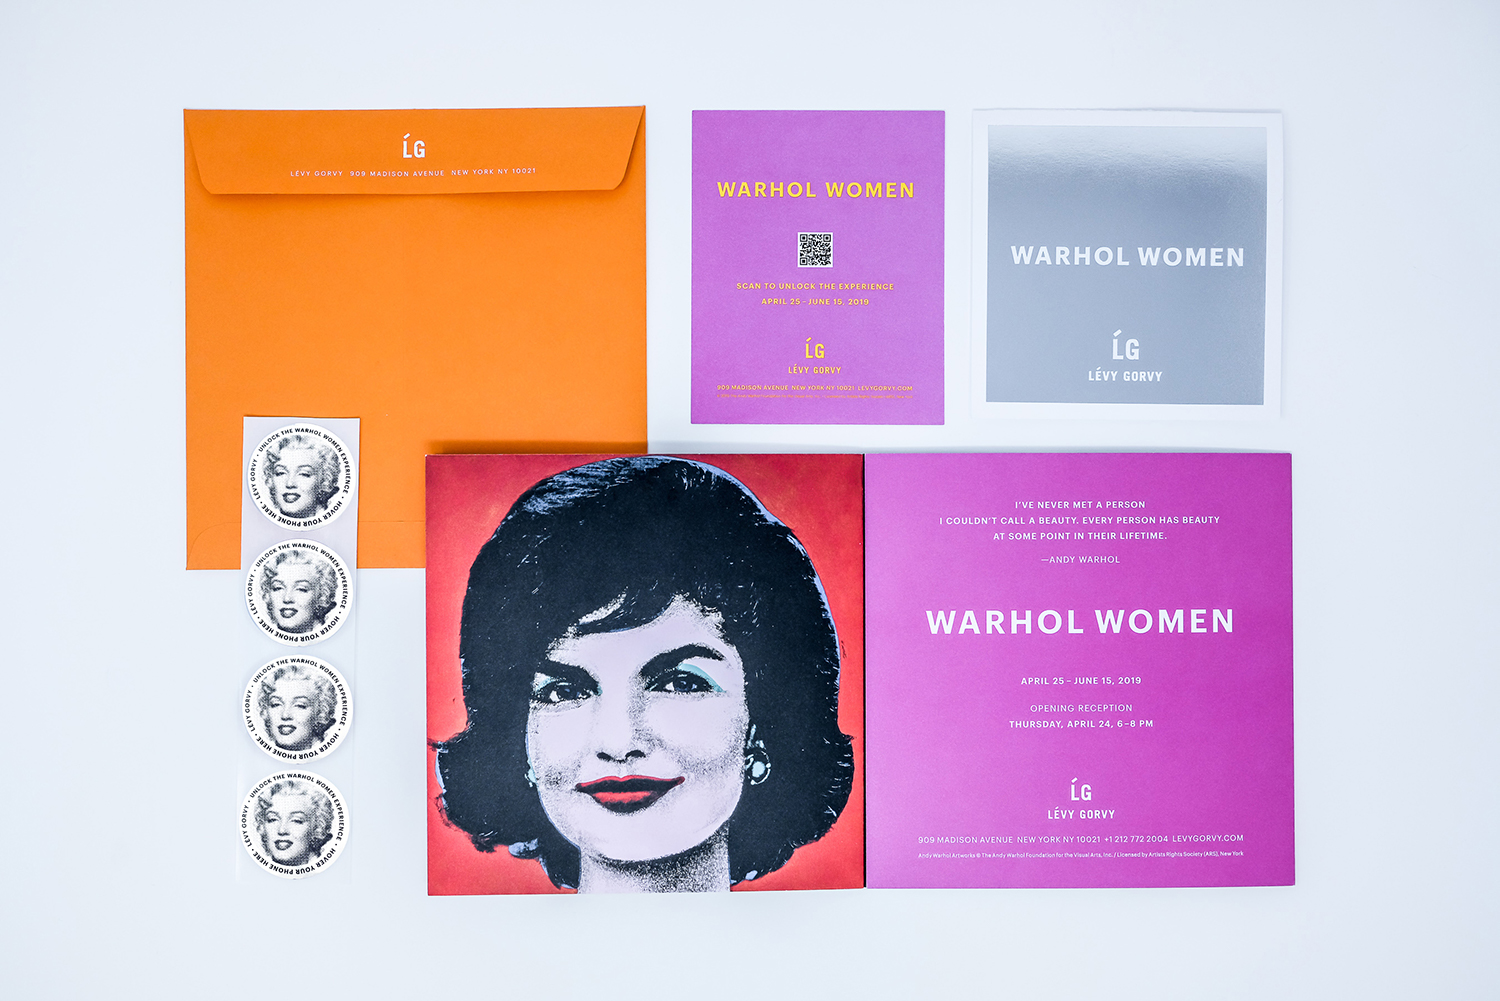 Warhol Women's comprehensive digital experience at the art gallery at the Levy Gallery powered by Blue Bite